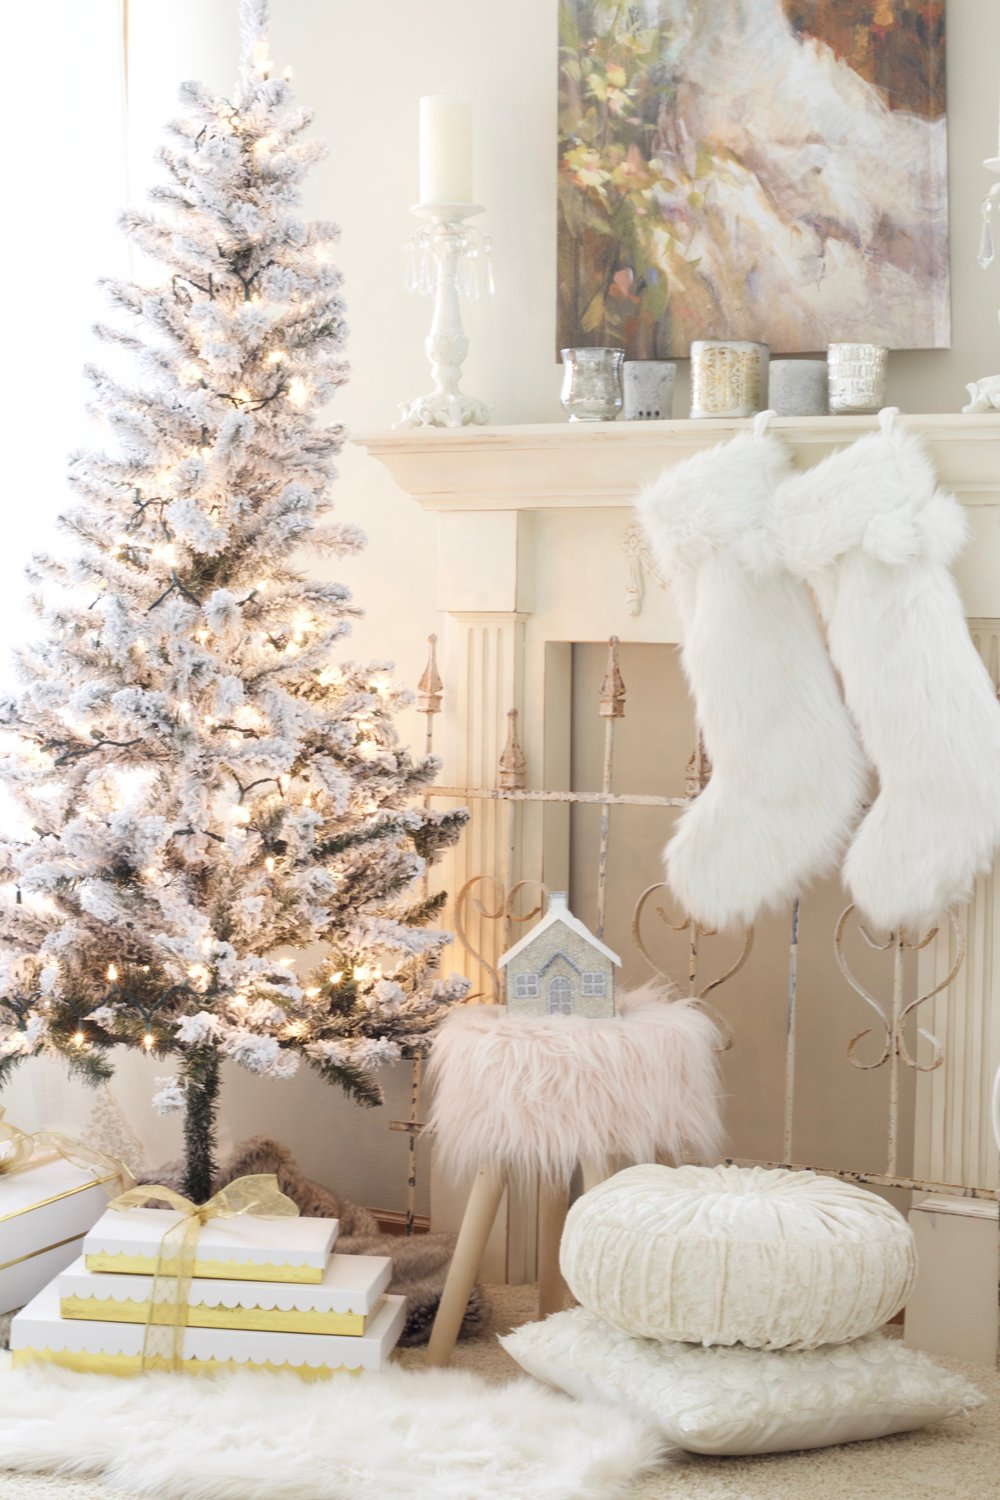 Home For Christmas - A Blush Pink Bedroom